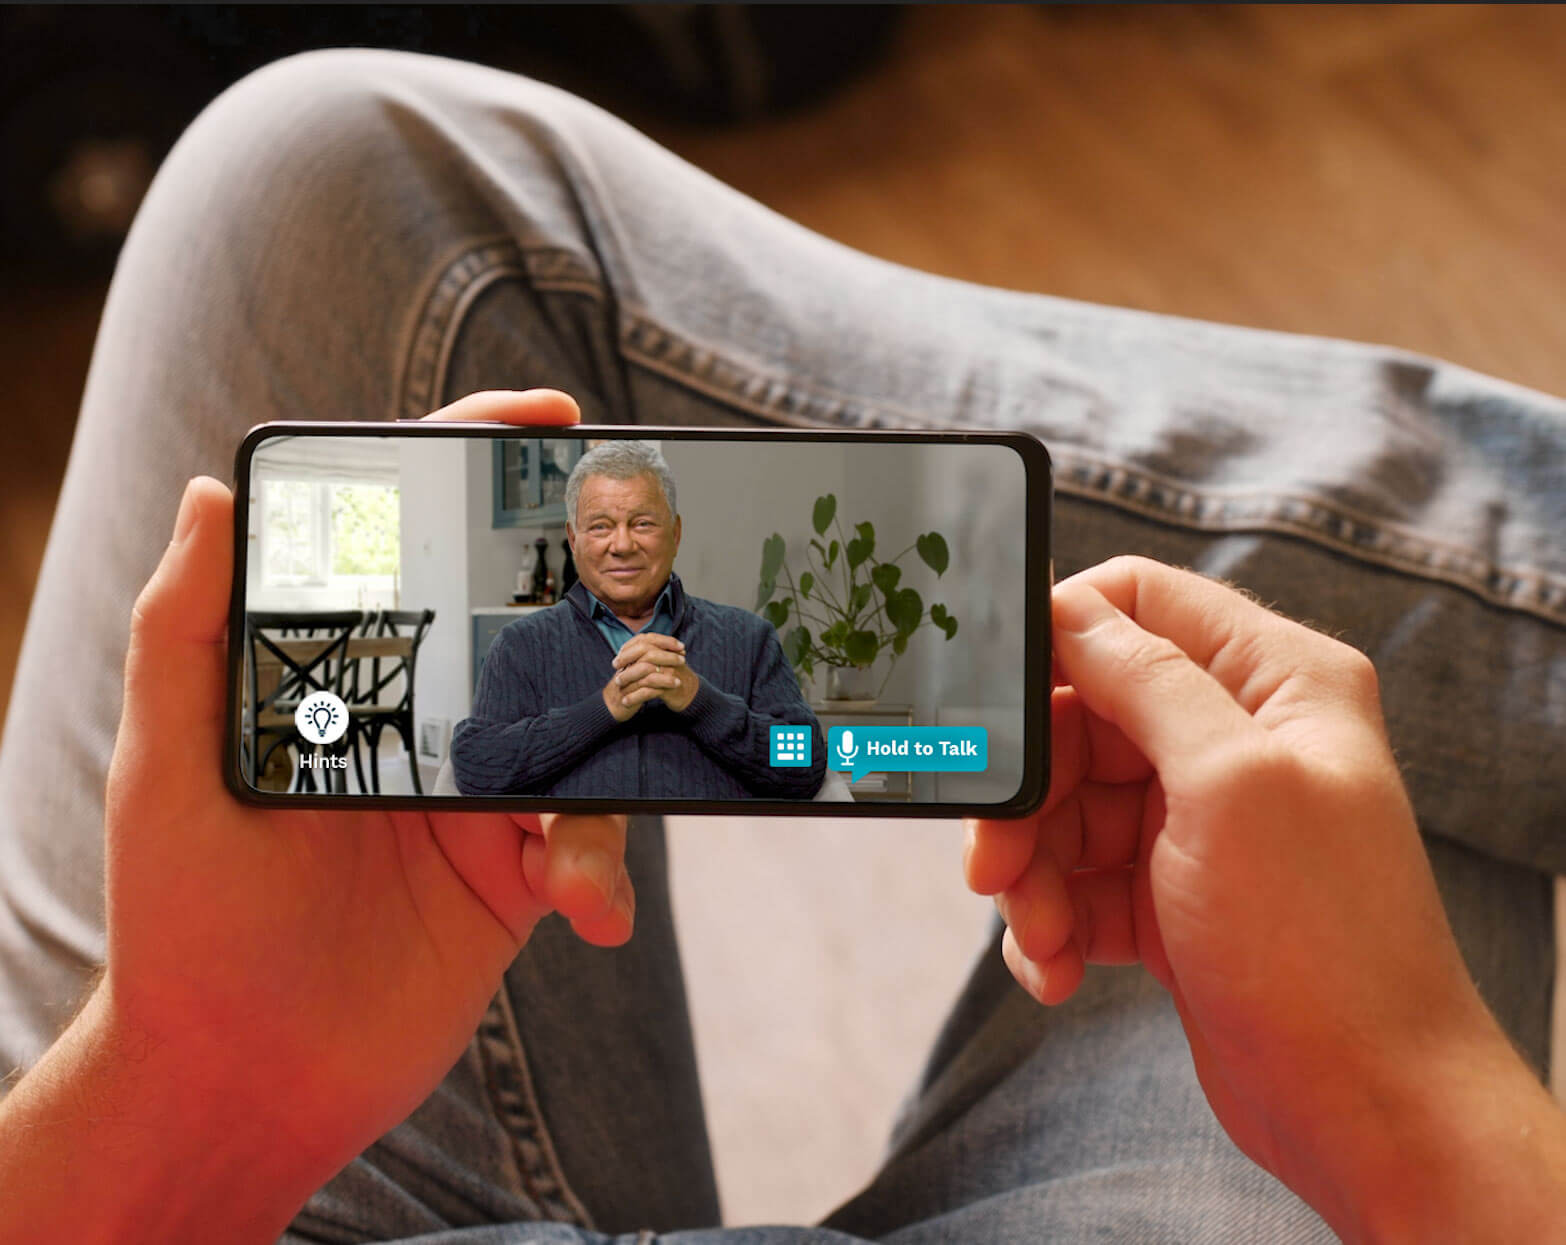 AI for Everyone: William Shatner and StoryFile Give New Tech to the People